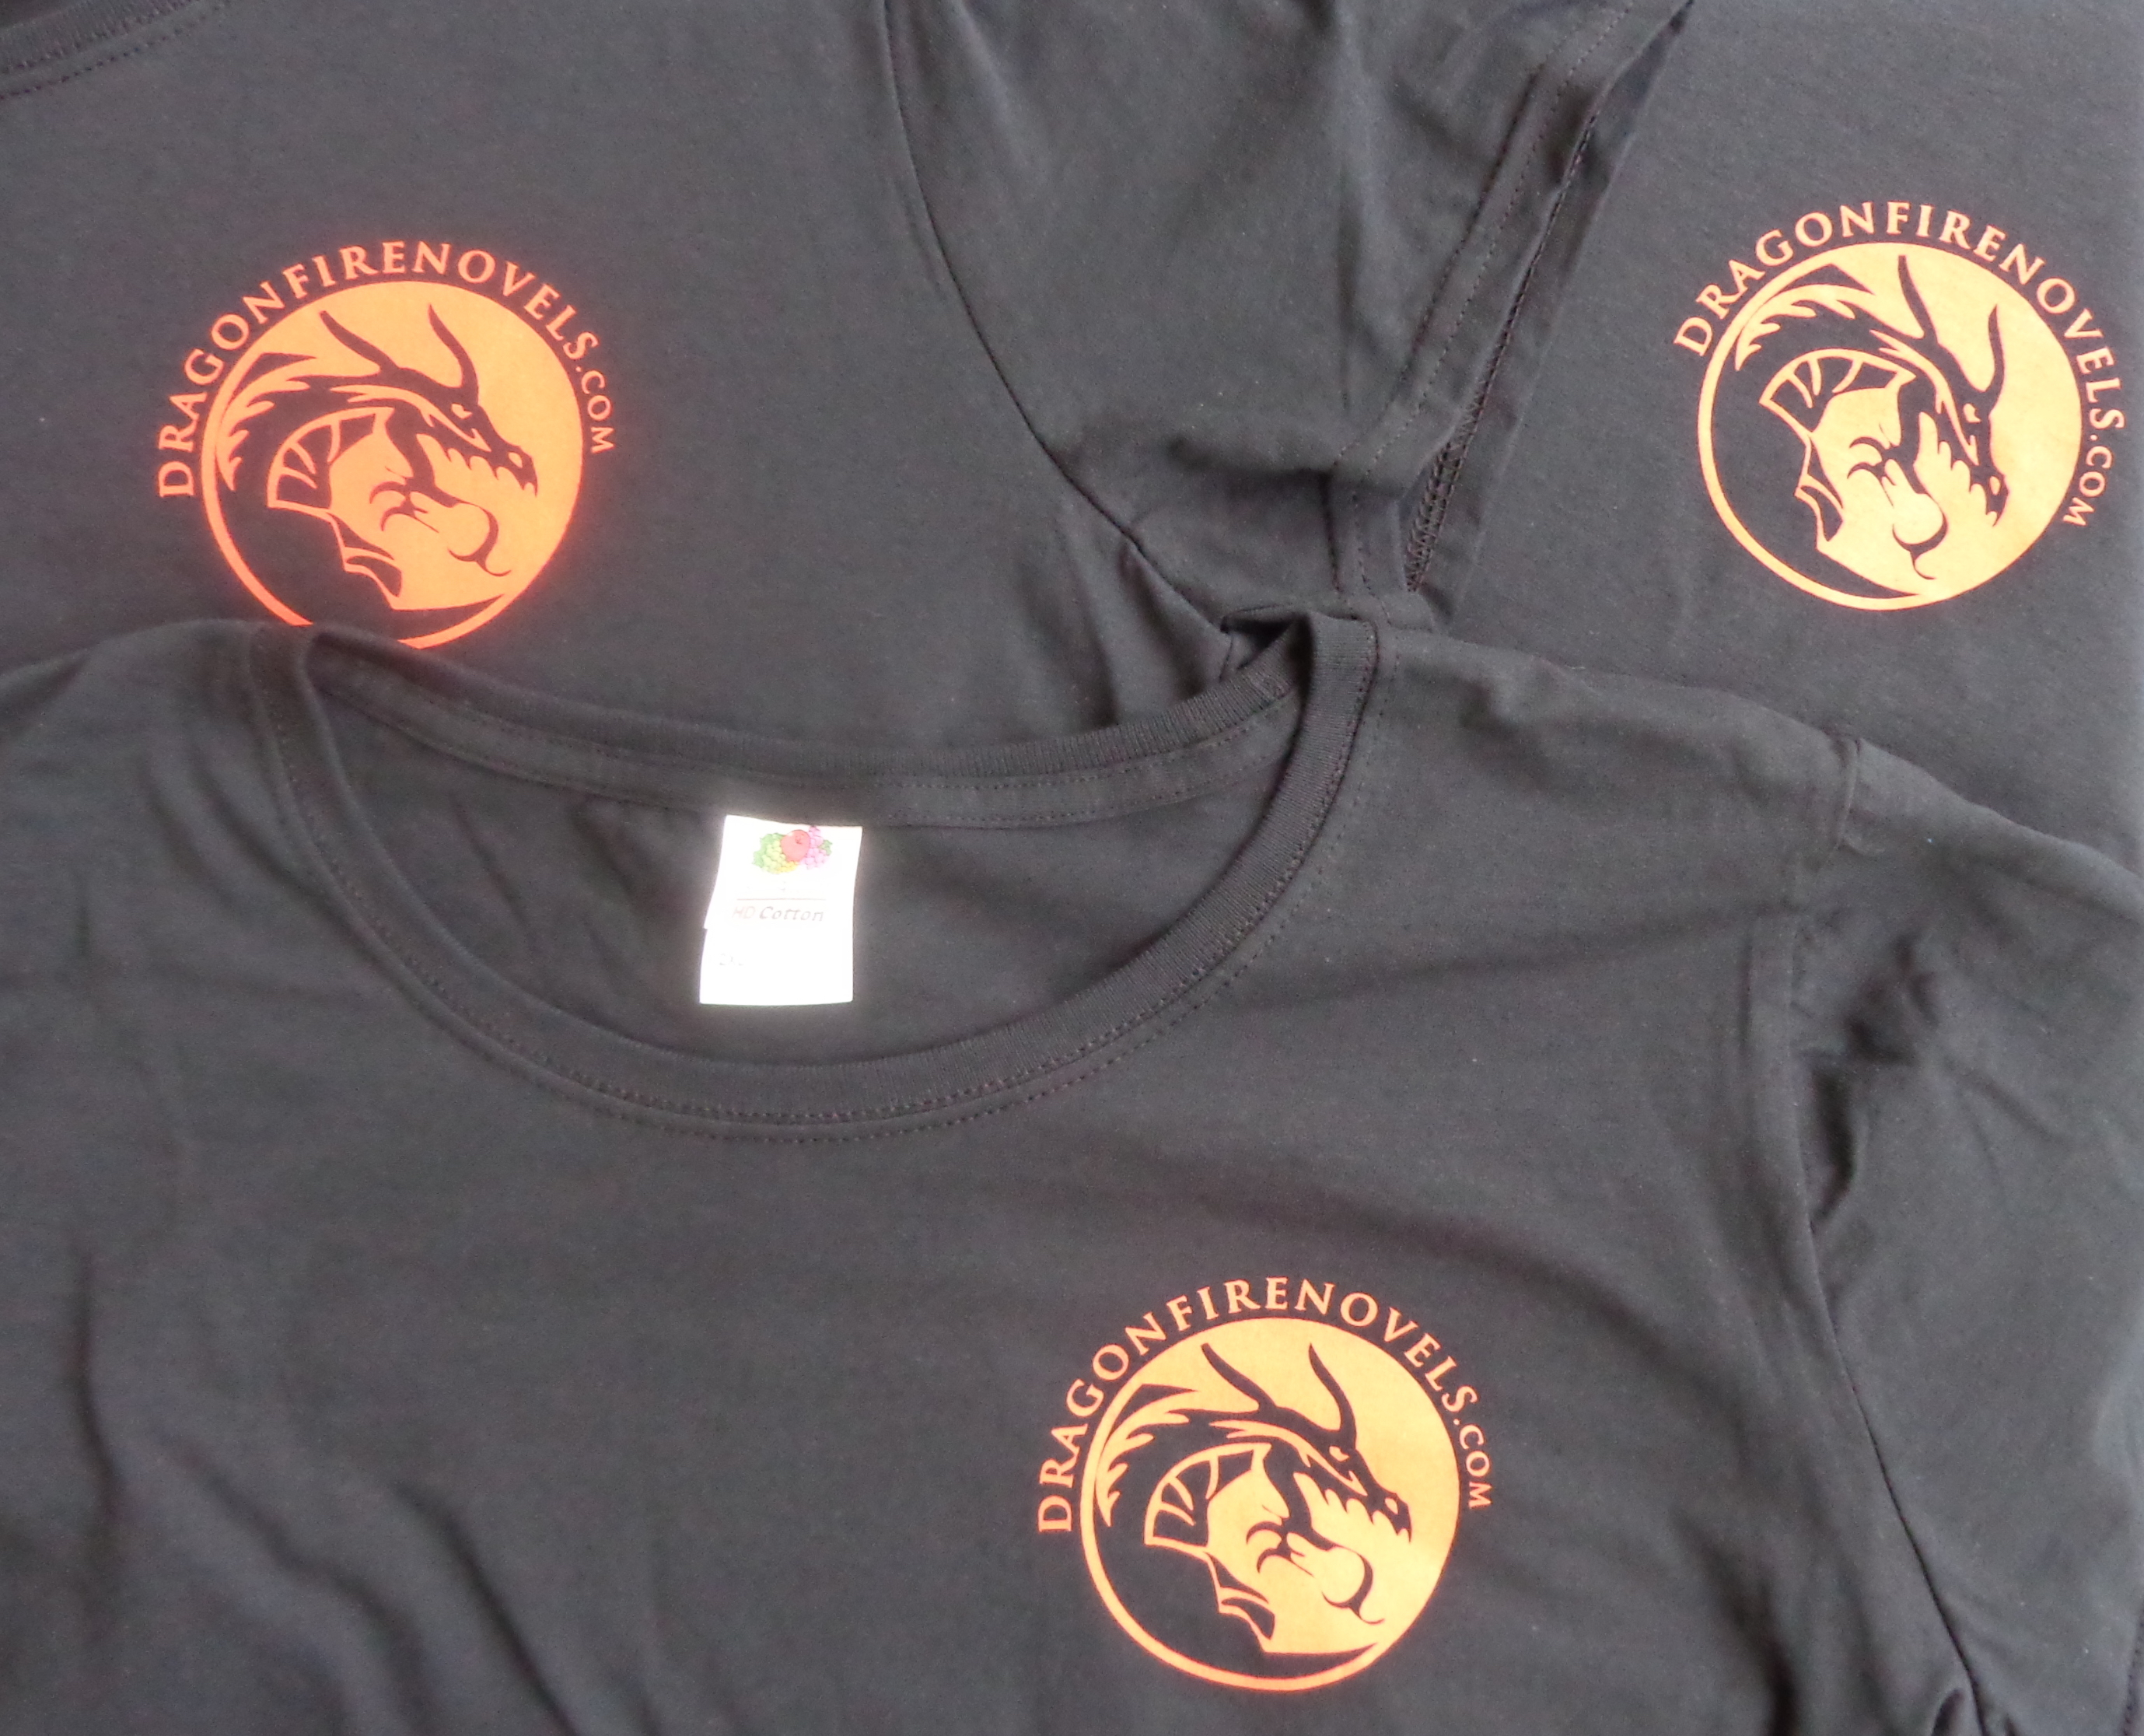 Dragonfire t-shirts, for the Dragonfire series of paranormal romances by Deborah Cooke